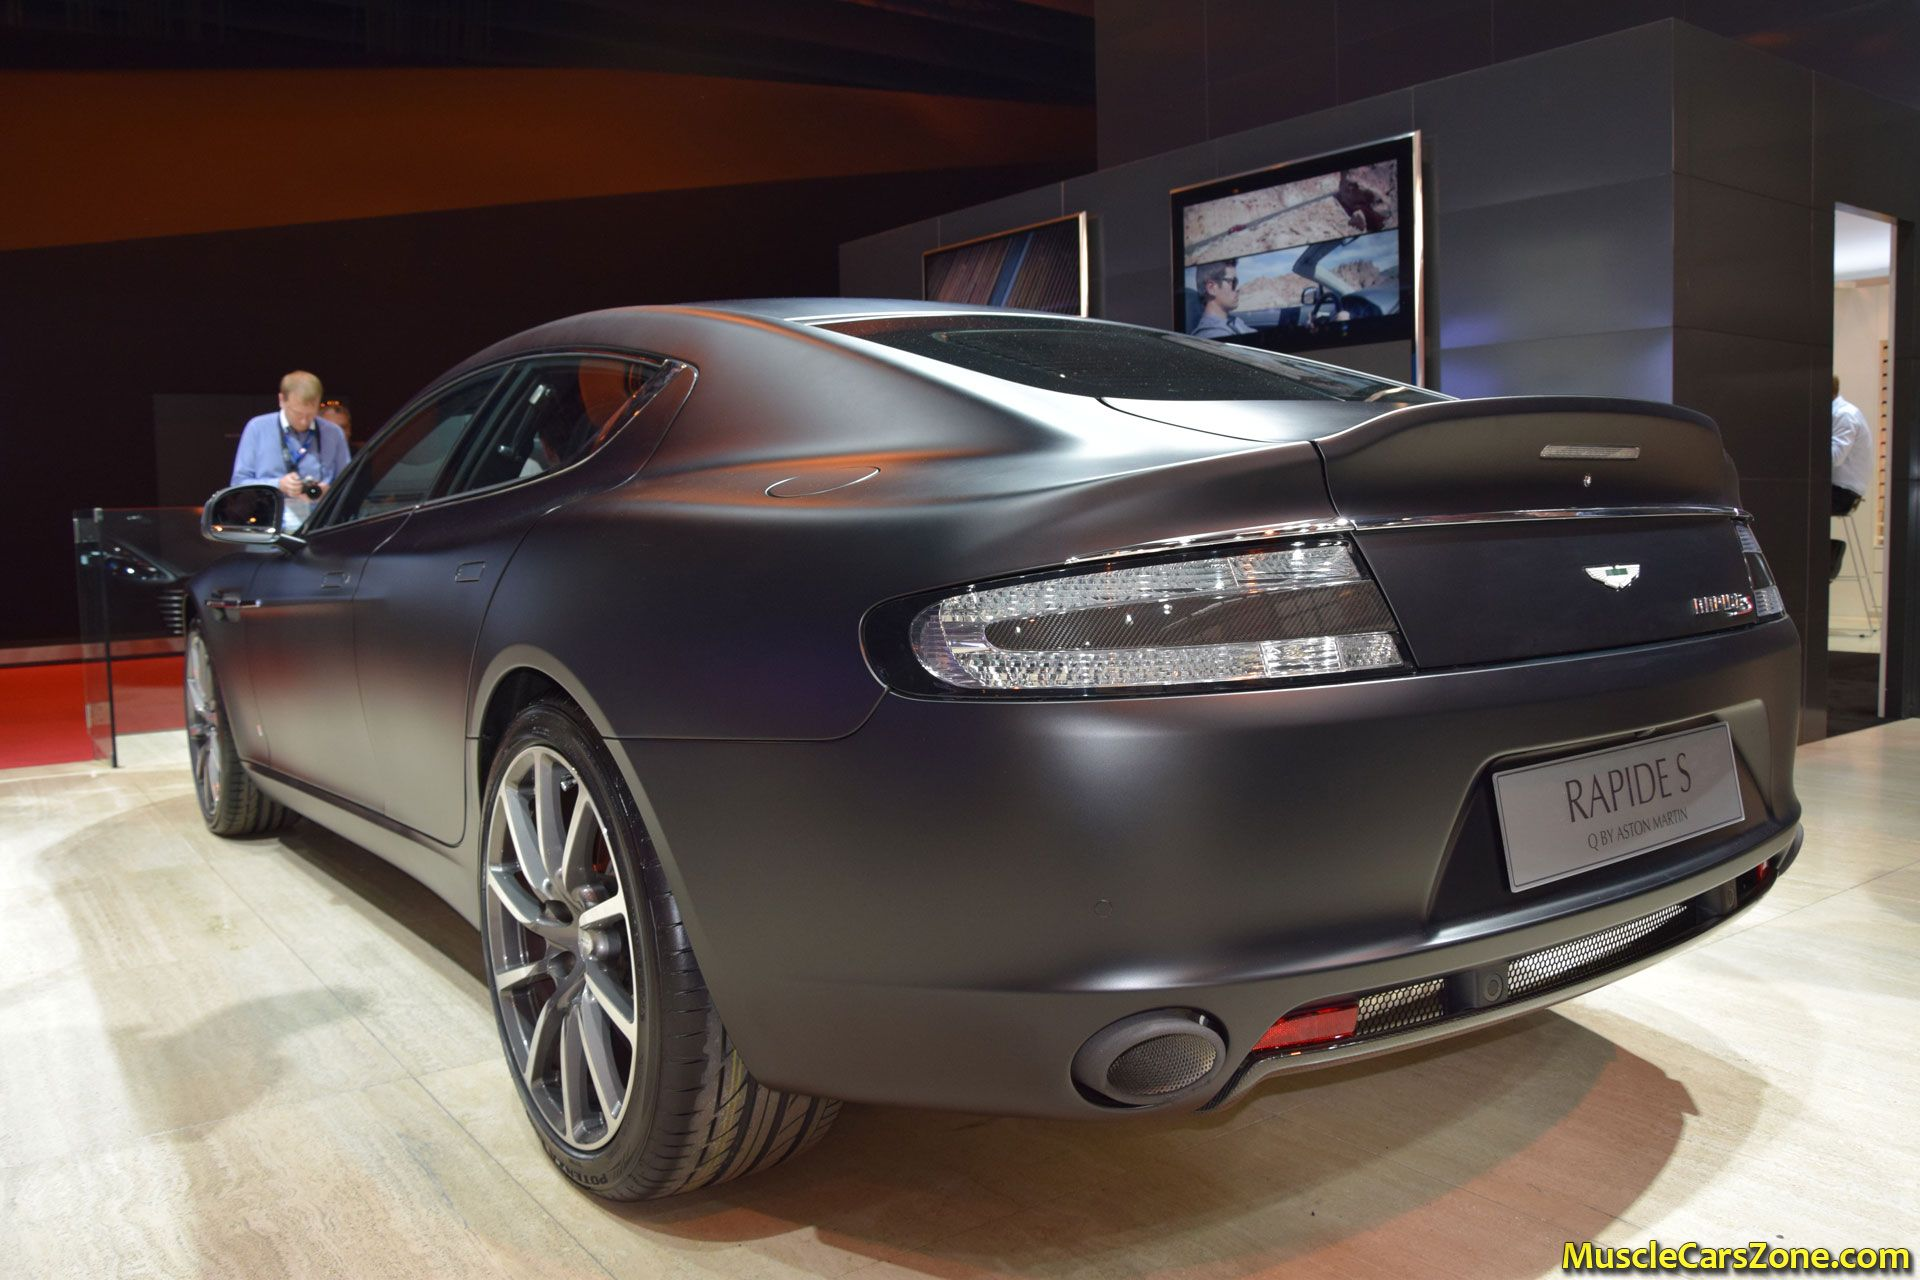 aston martin rapide s 2014 paris motor show 1 muscle cars zone. Black Bedroom Furniture Sets. Home Design Ideas